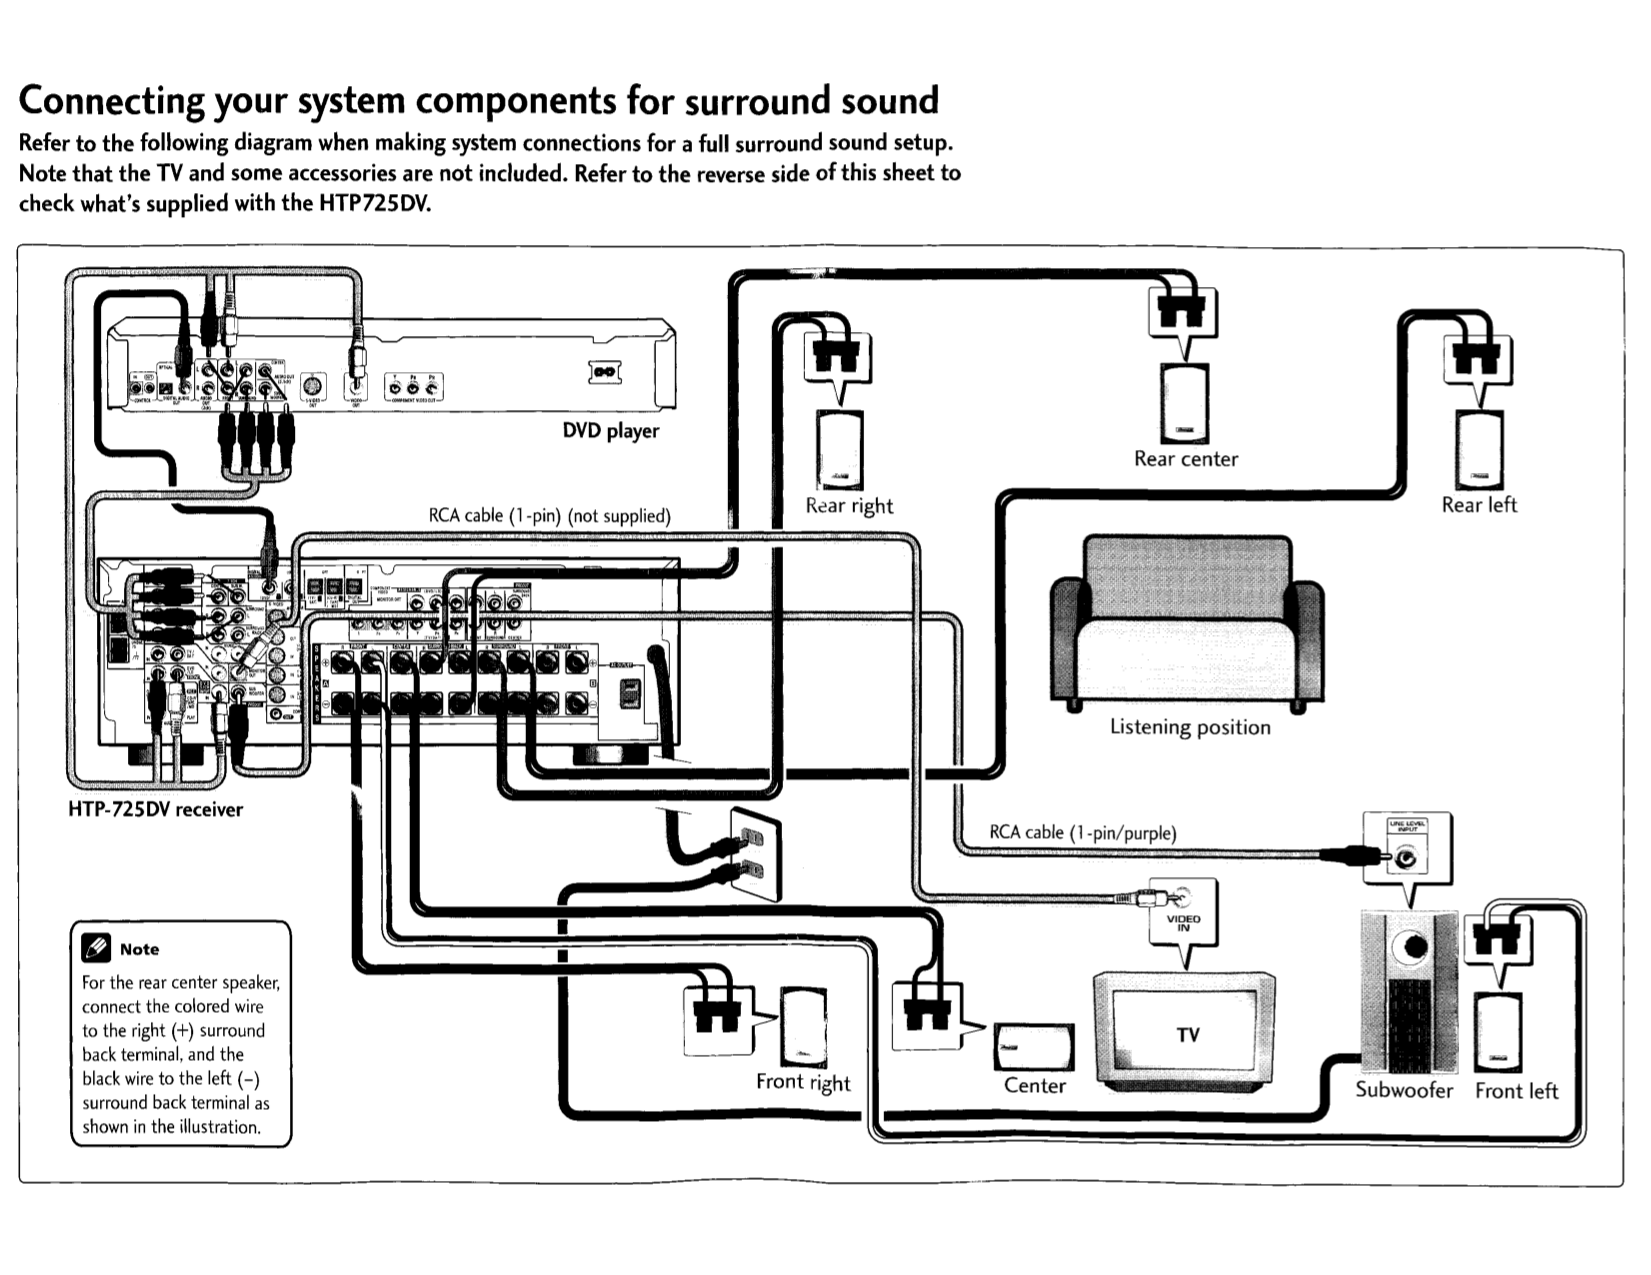 wiring diagram for surround sound system 2 way switch multiple lights sony imageresizertool com